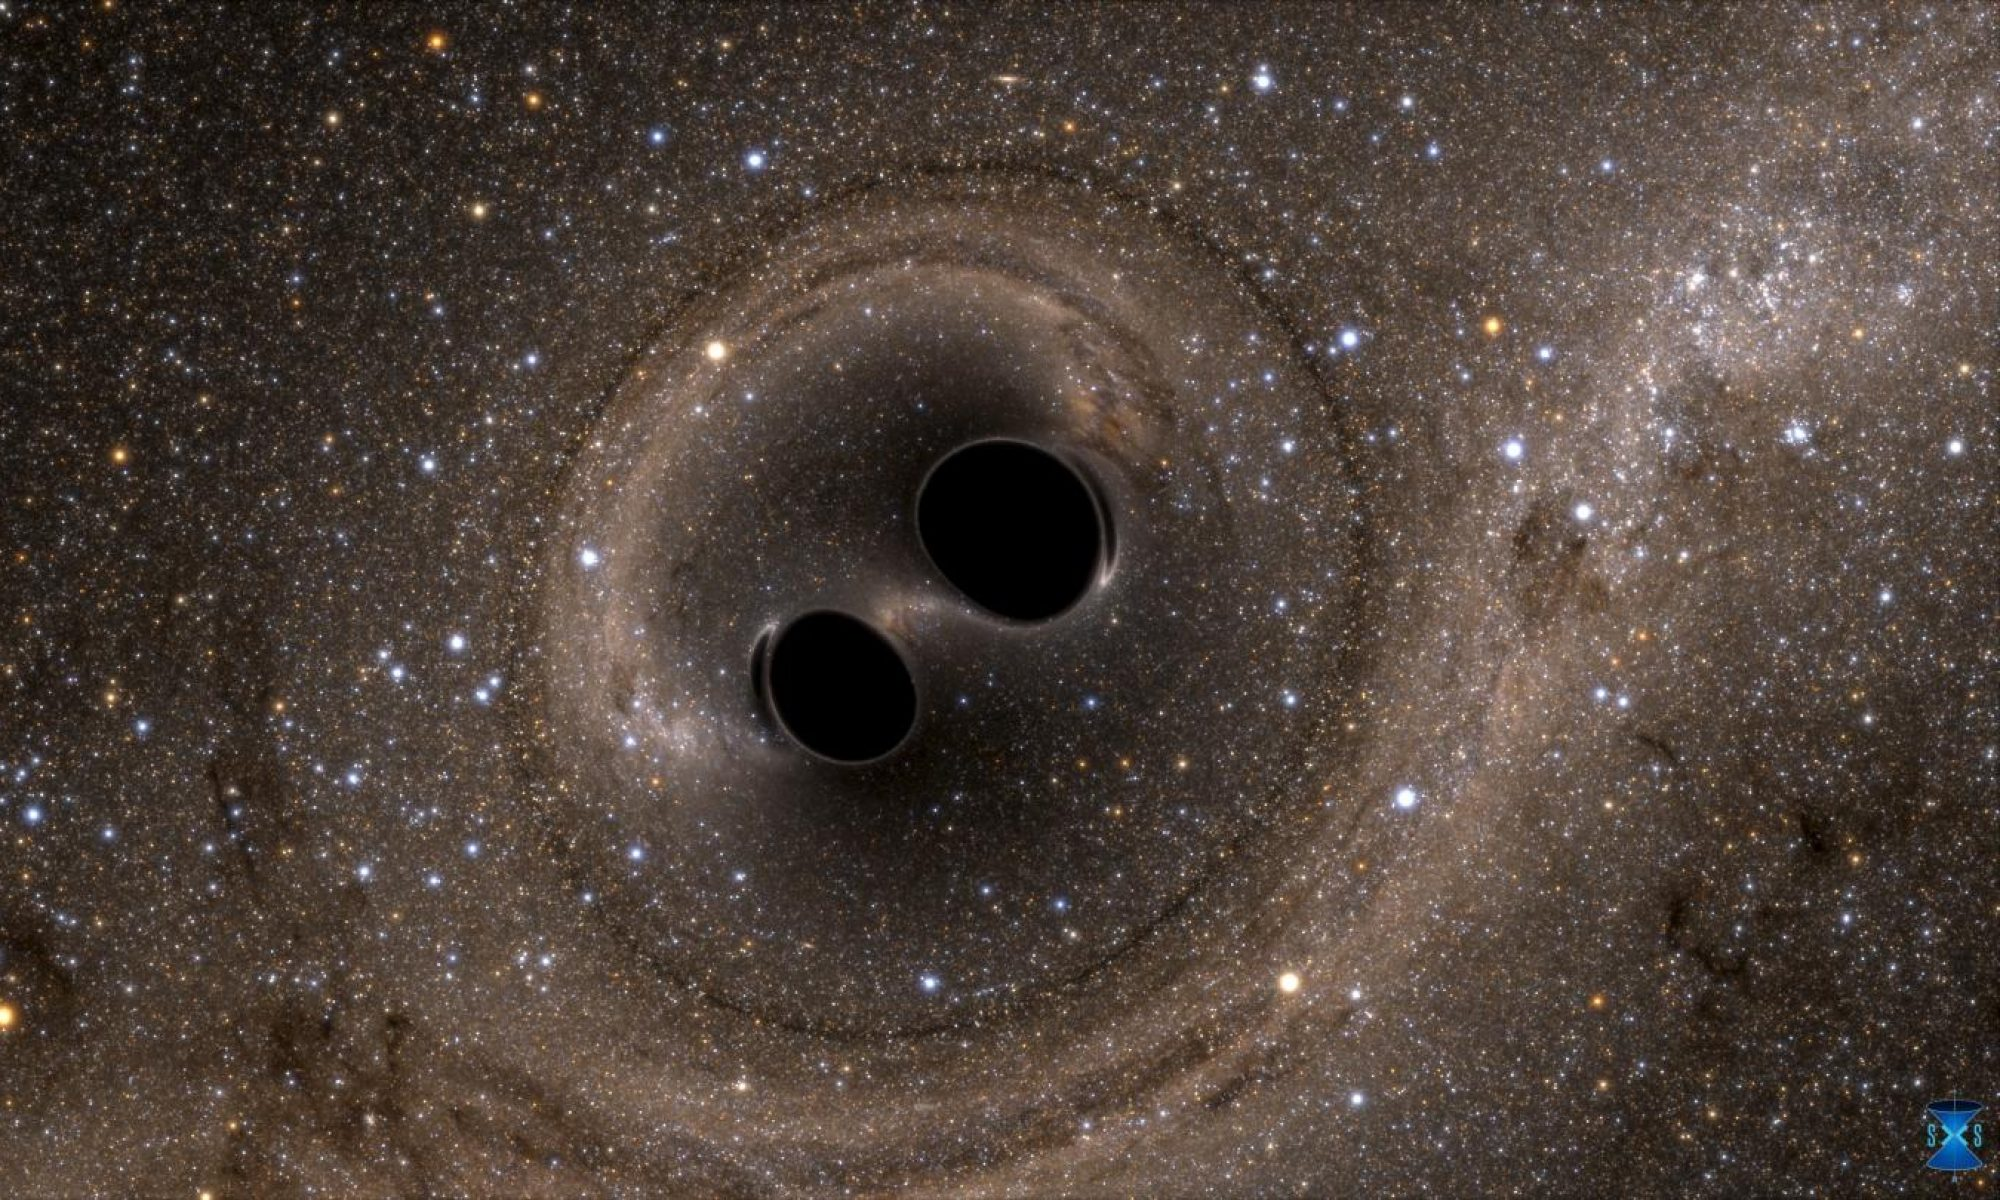 Galaxy and Black Hole Astrophysics Group